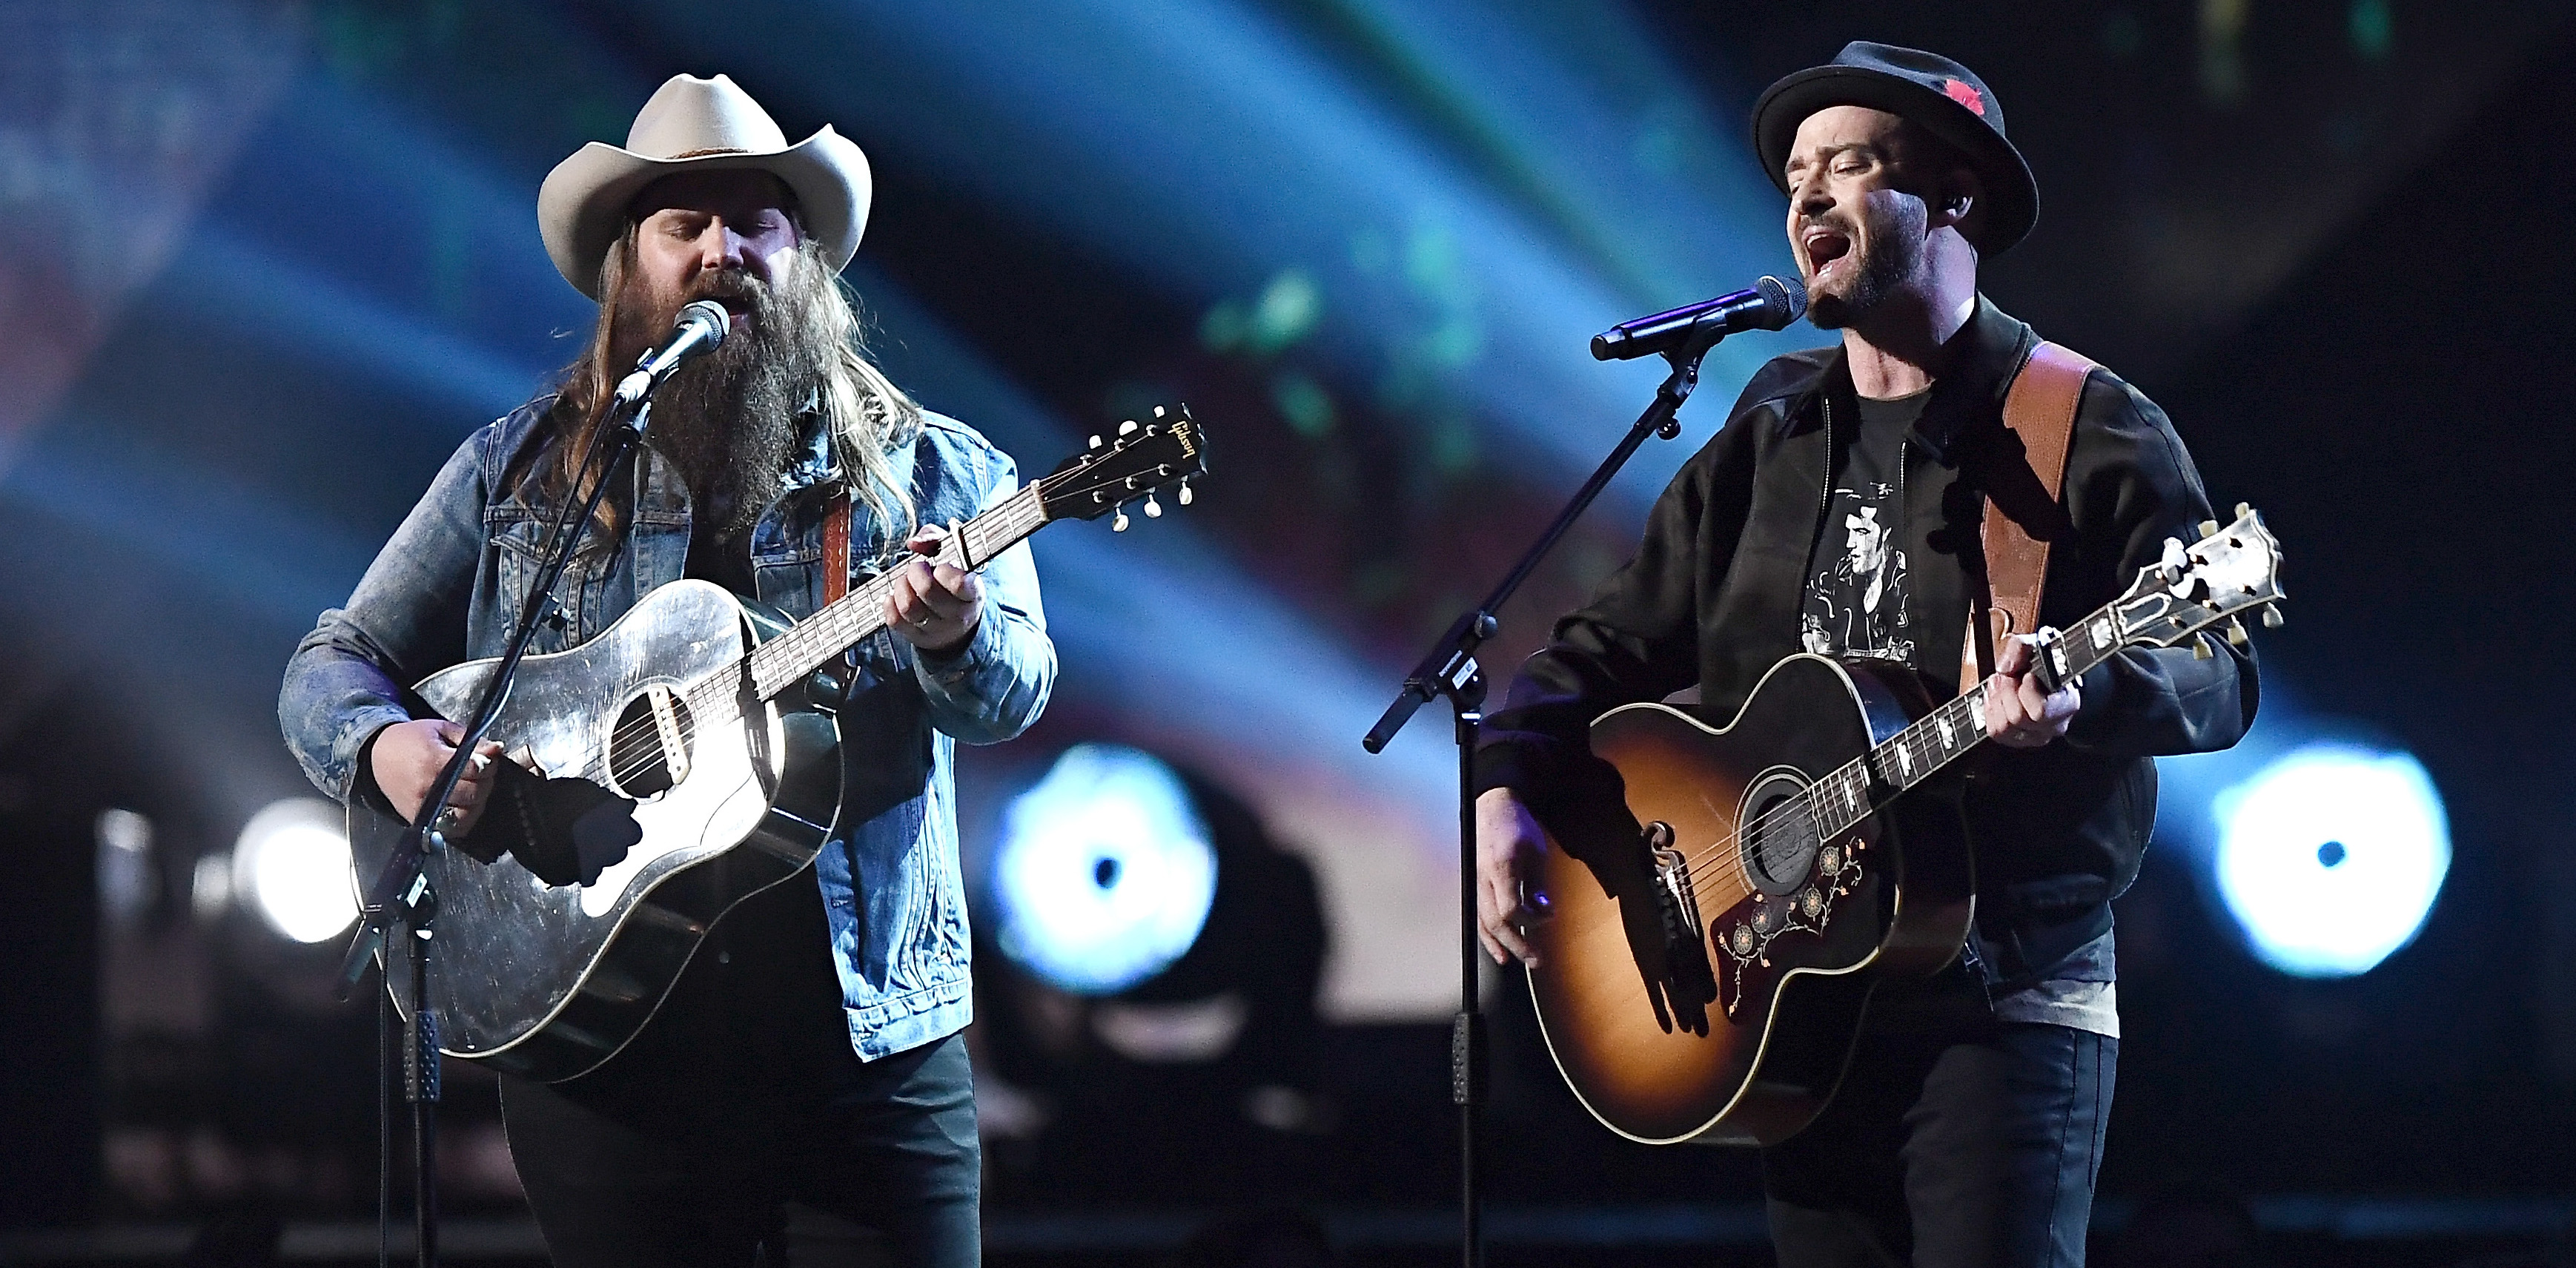 BRIT Awards 2018: Justin Timberlake faz performance perfeita de 'Say Something' com Chris Stapleton; vem ver